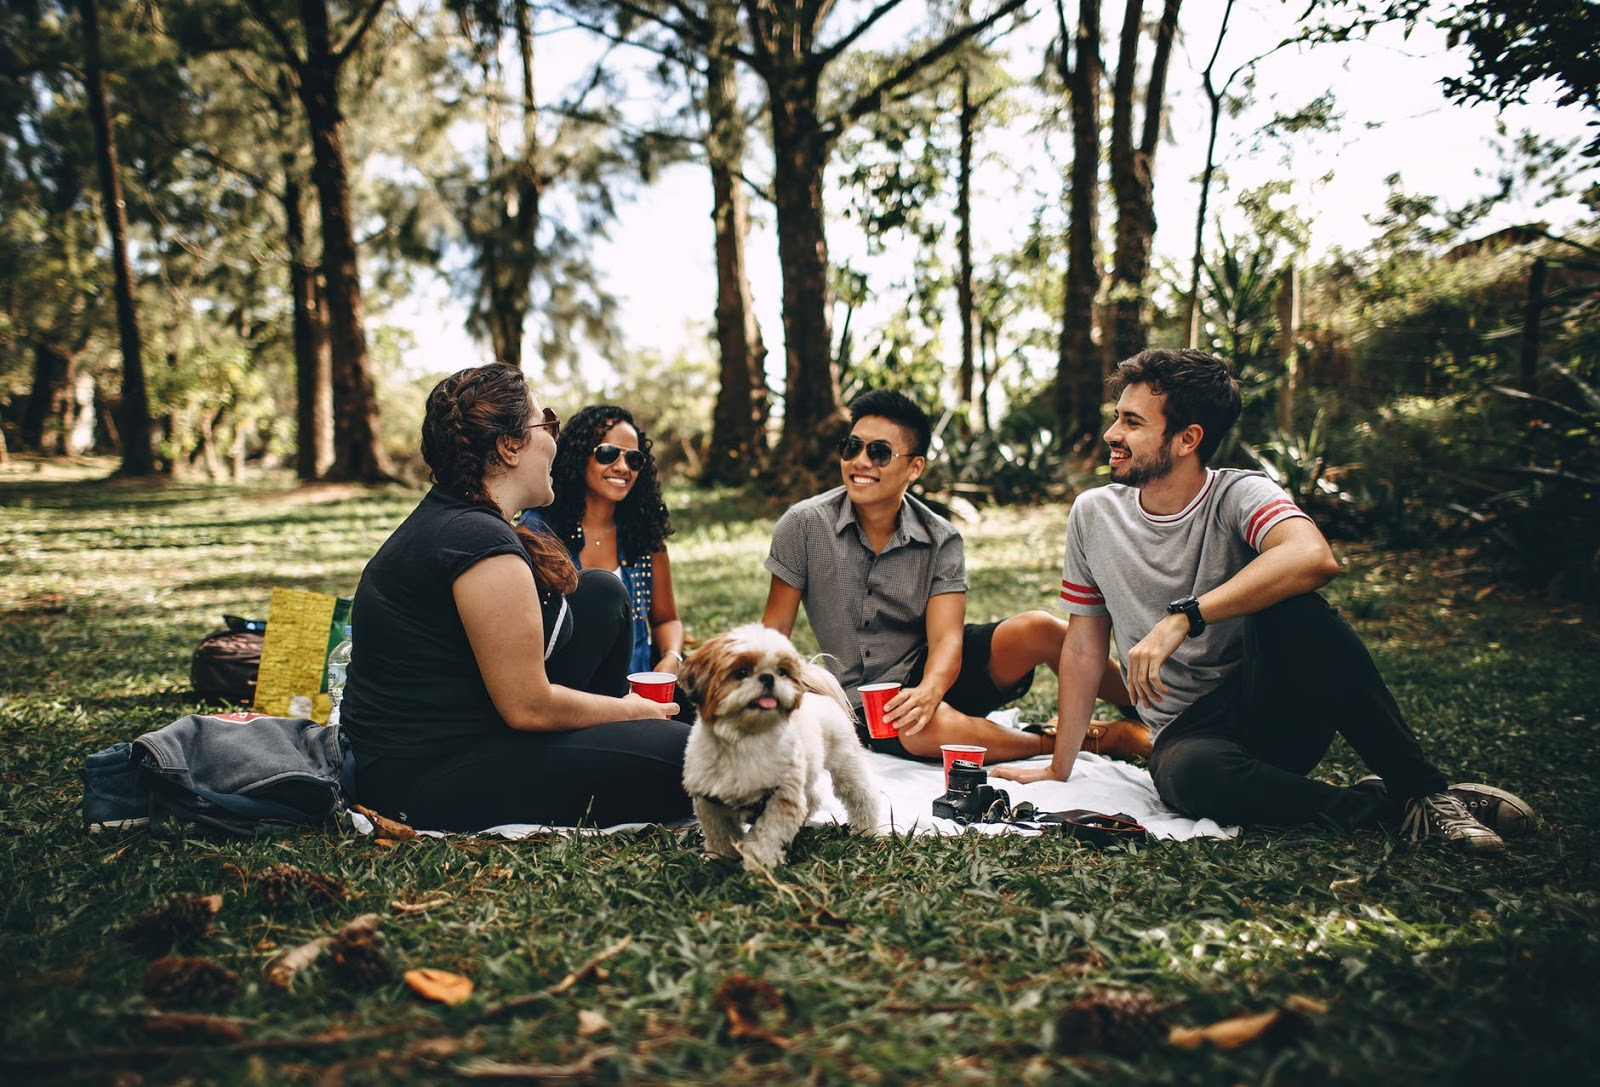 people picnicking with dog